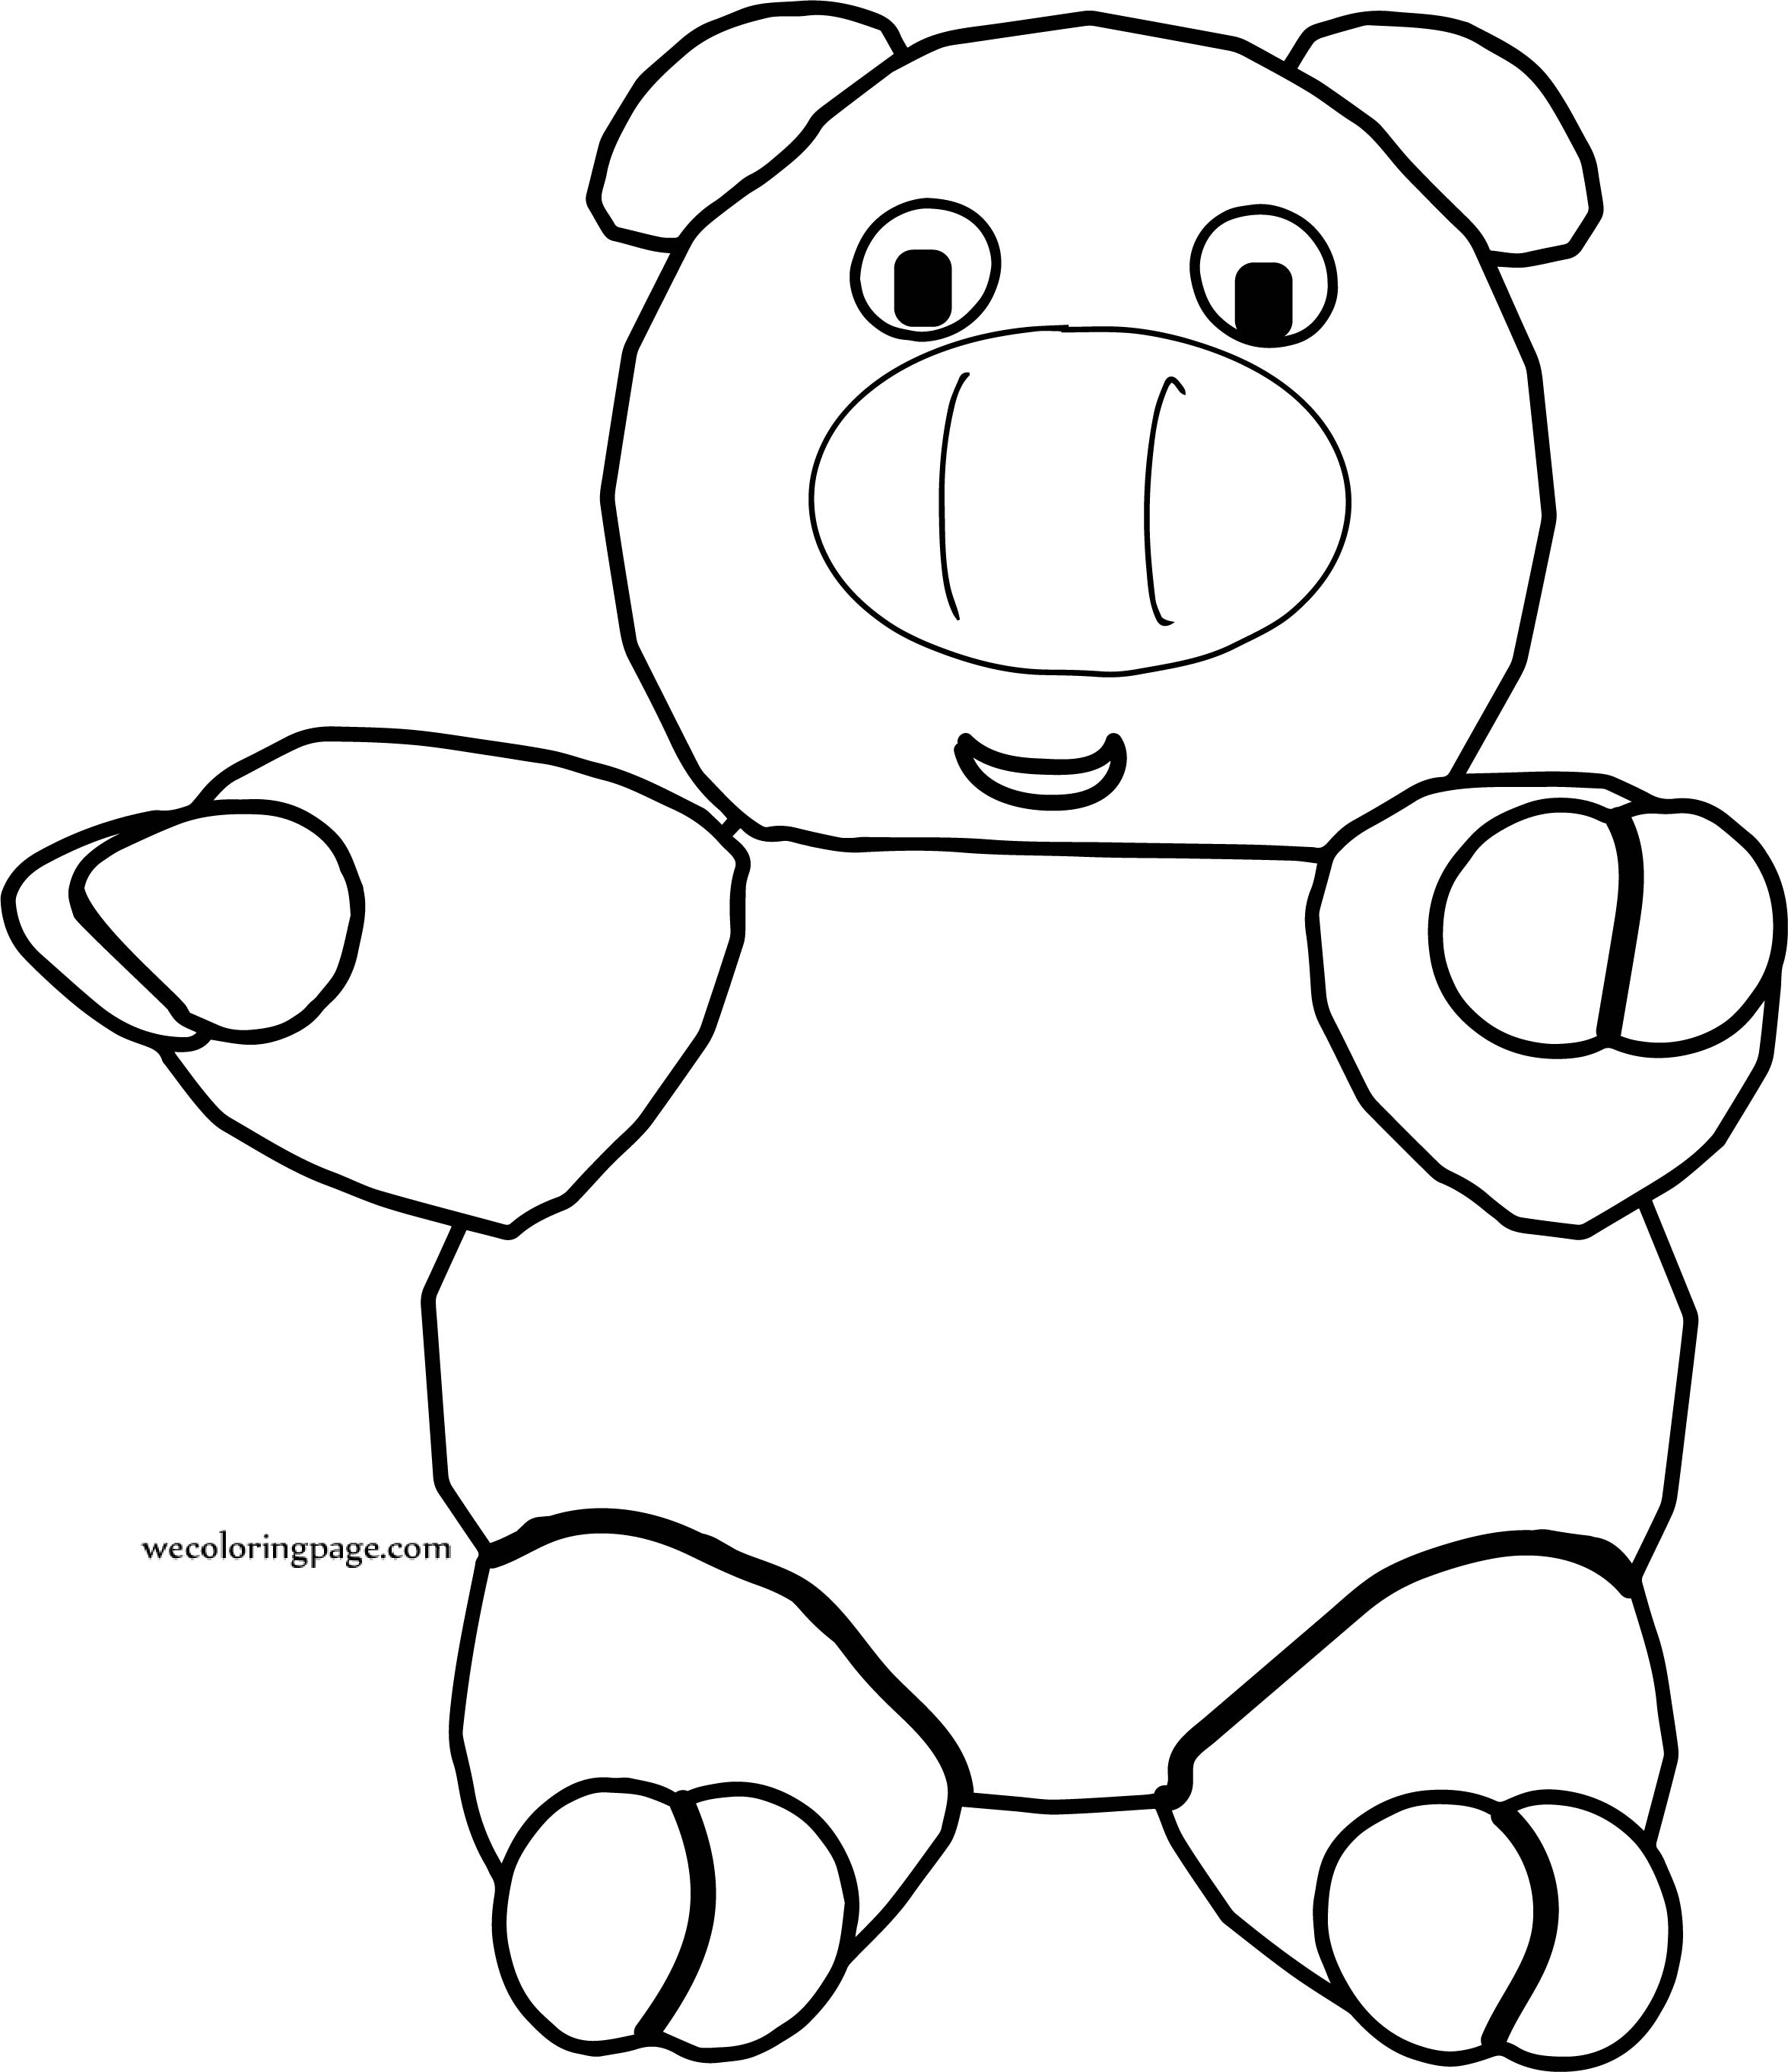 Pig Happy Toy Cartoon Coloring Page